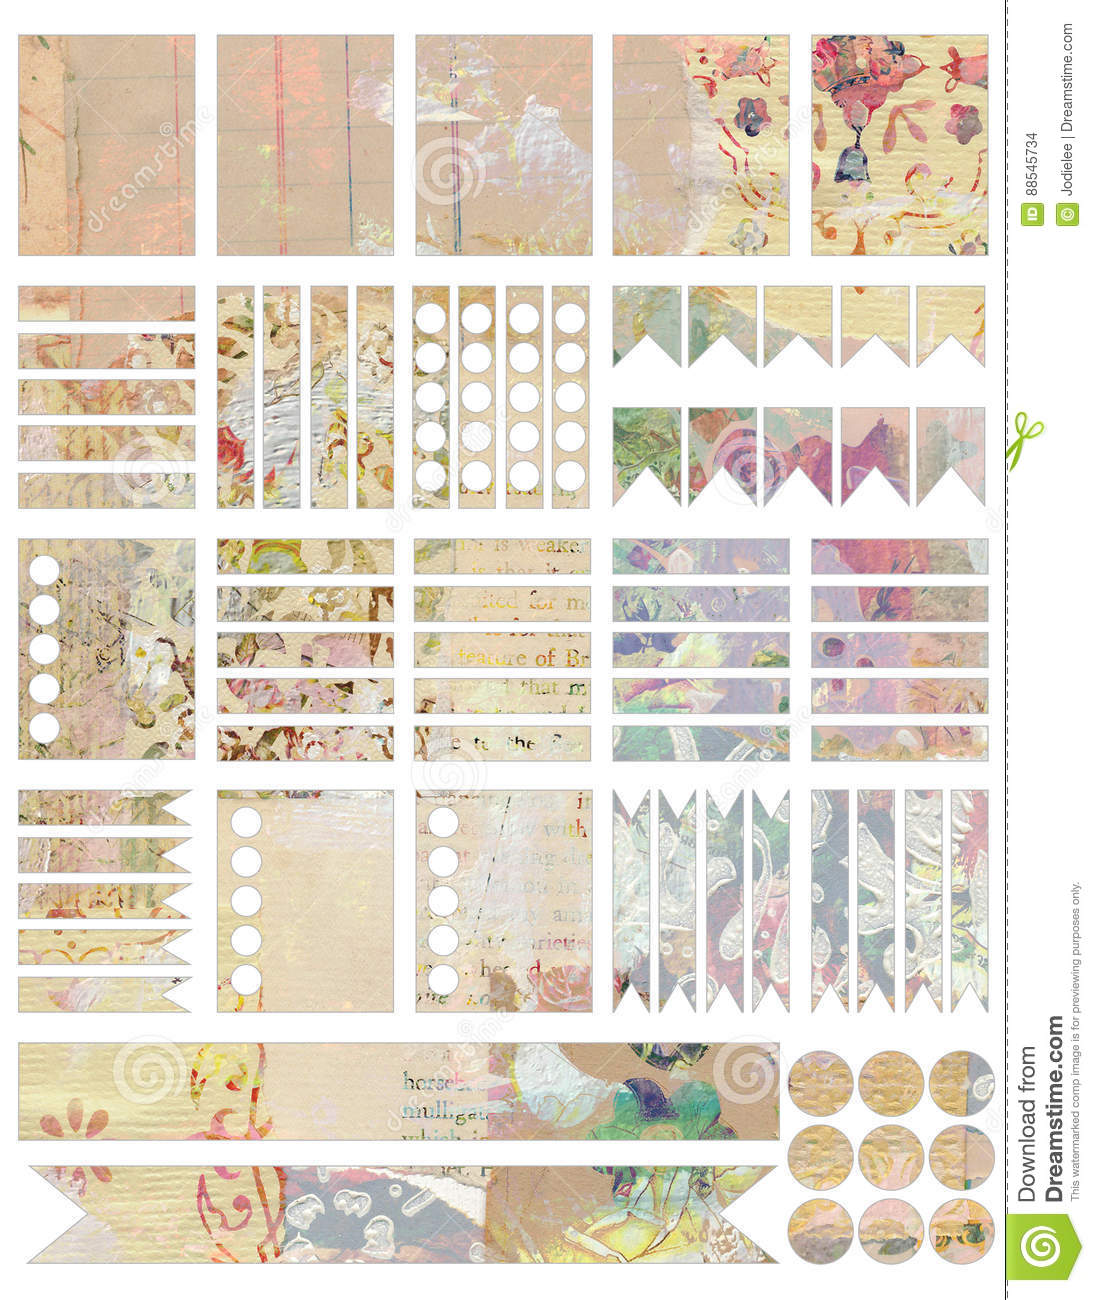 Printable Shabby Chic Vintage Style Collage Planner Stickers Stock Illustration Illustration Of Vintage Artistic 88545734